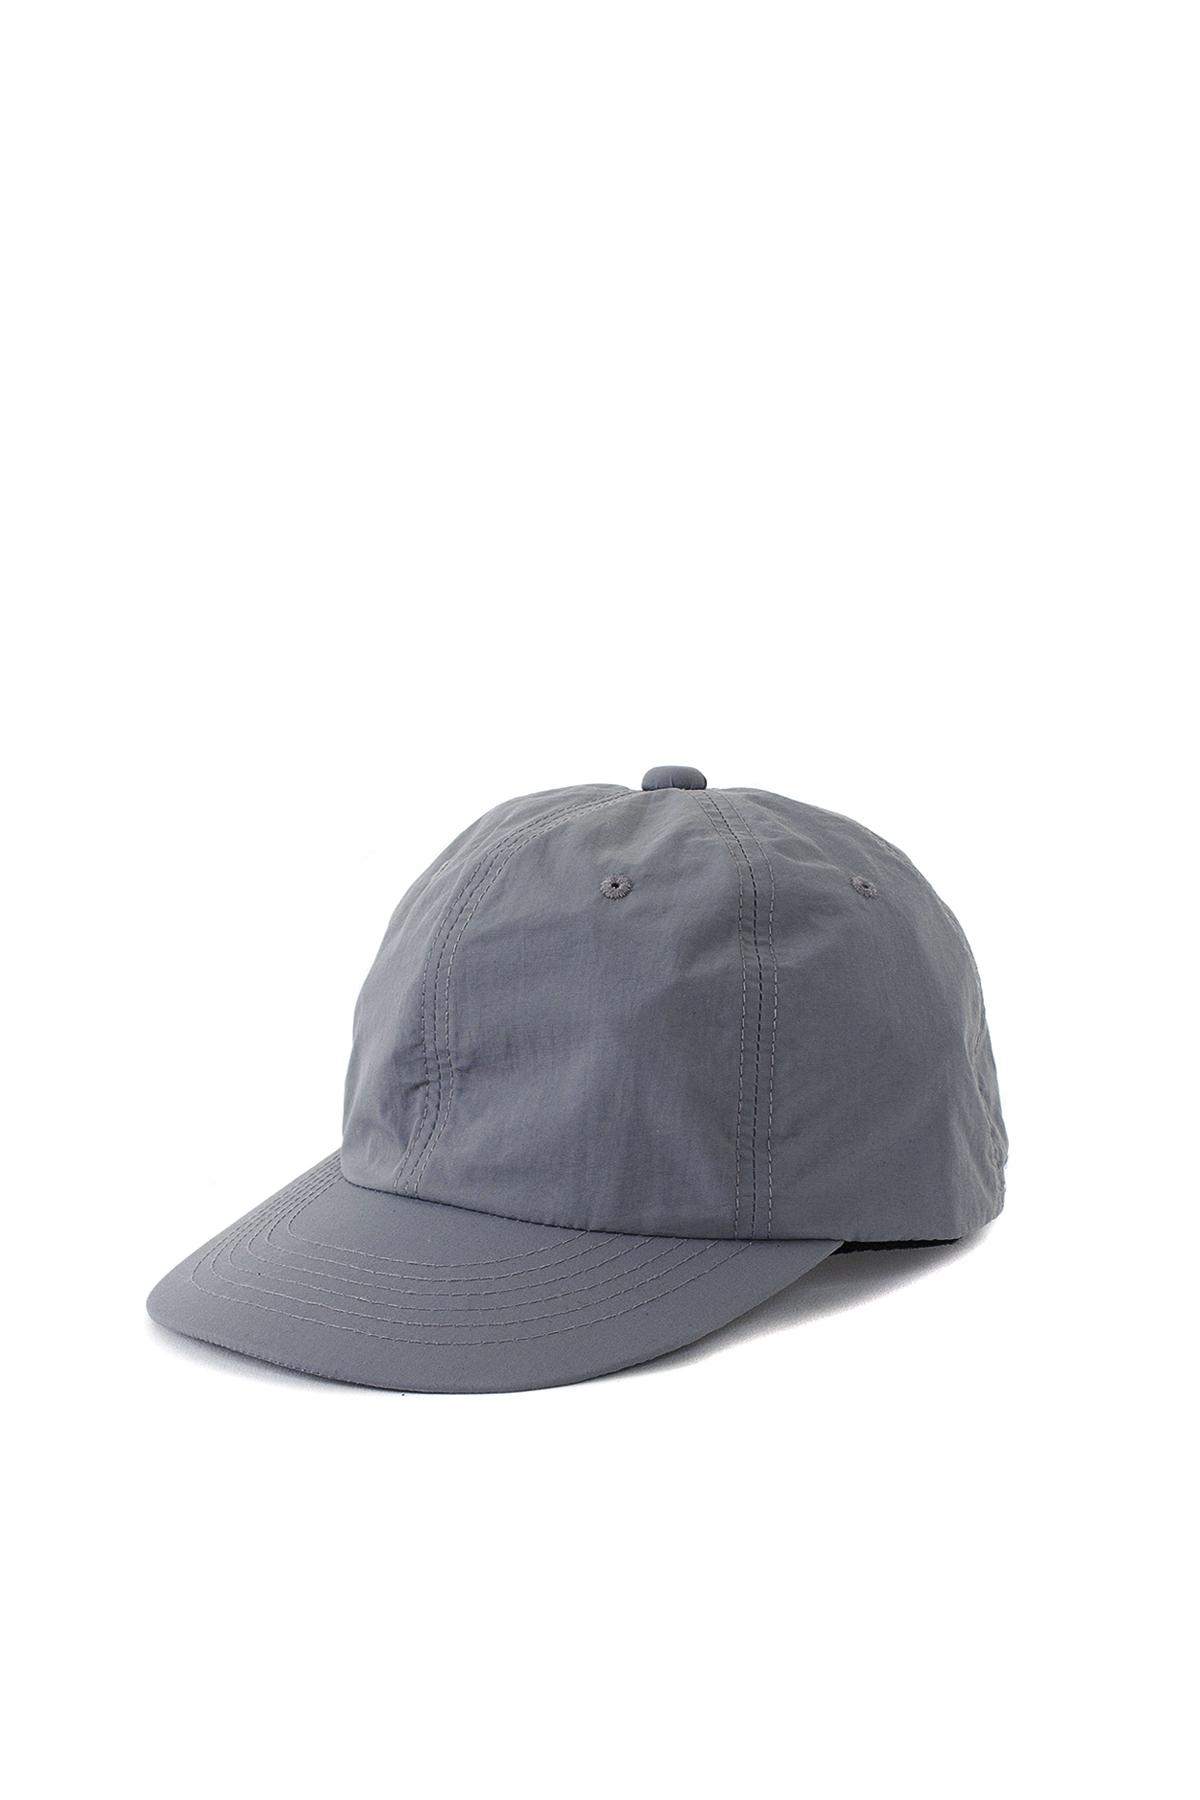 forumwear : Supplex Ball Cap (Grey)